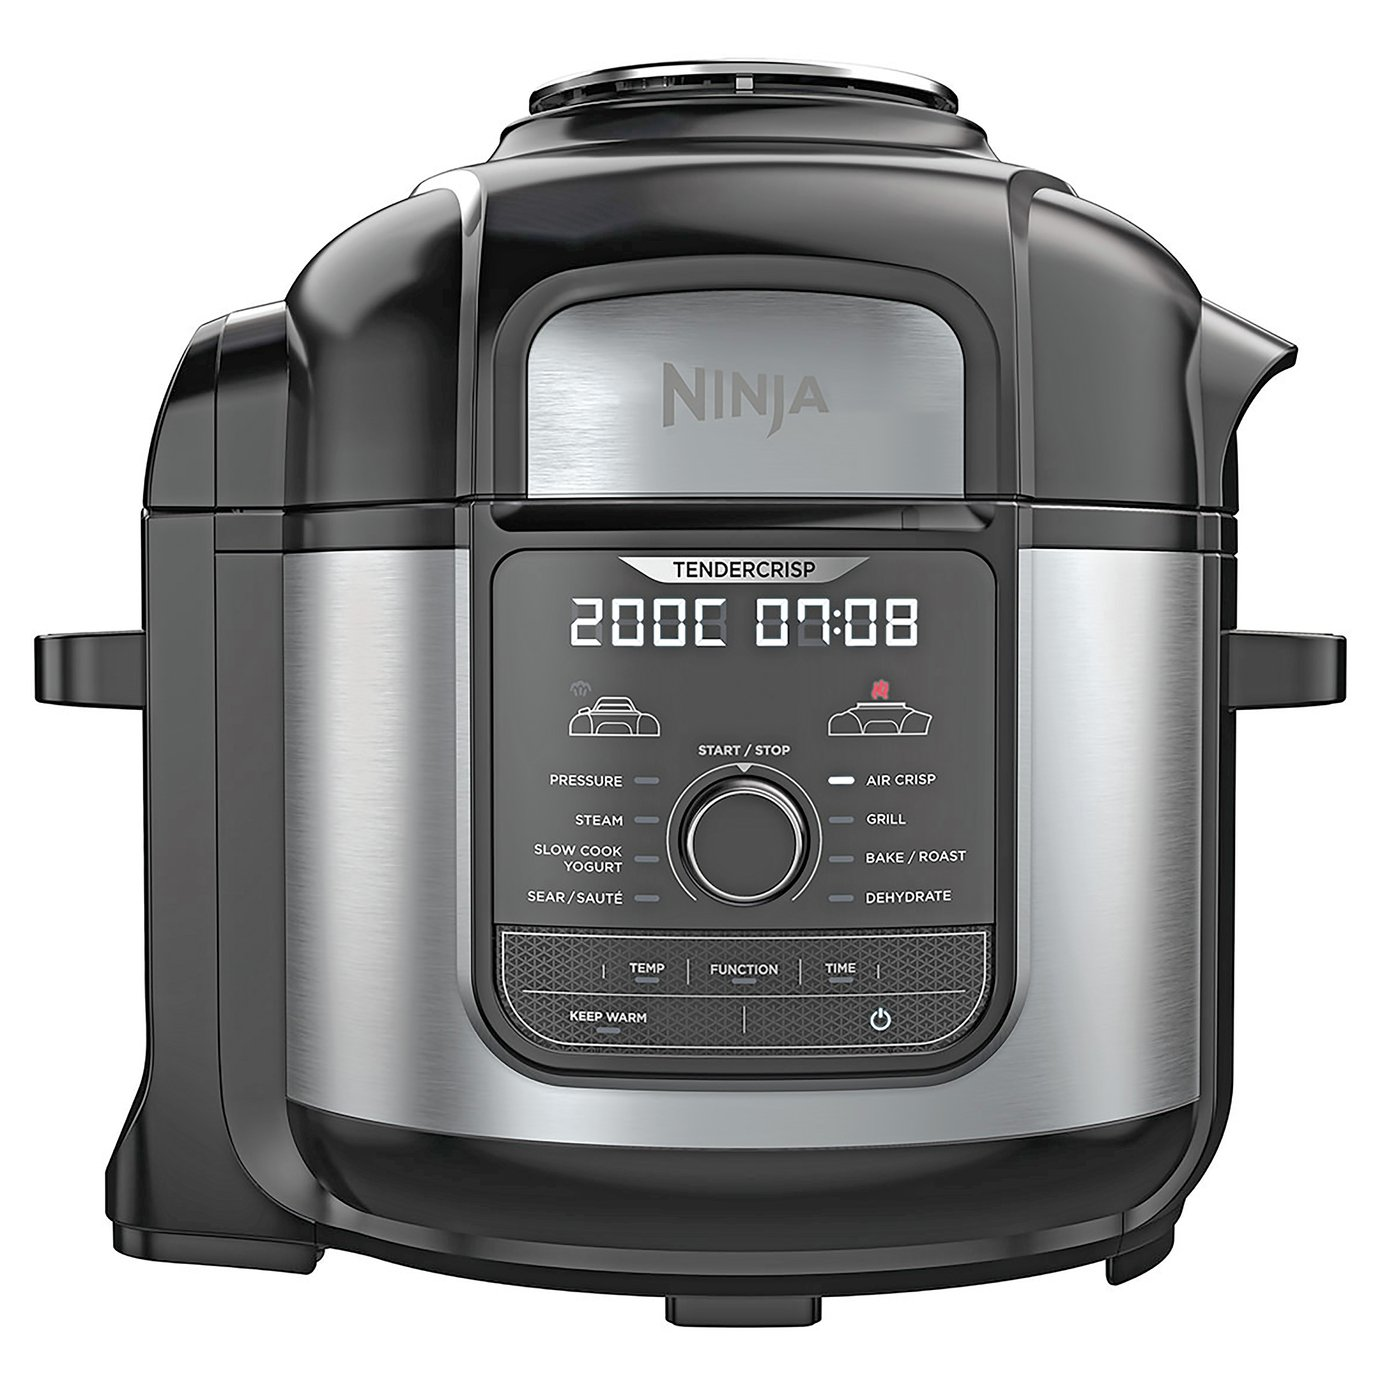 Ninja Foodi 7.5L Multi Pressure Cooker Air Fryer Dehydrator